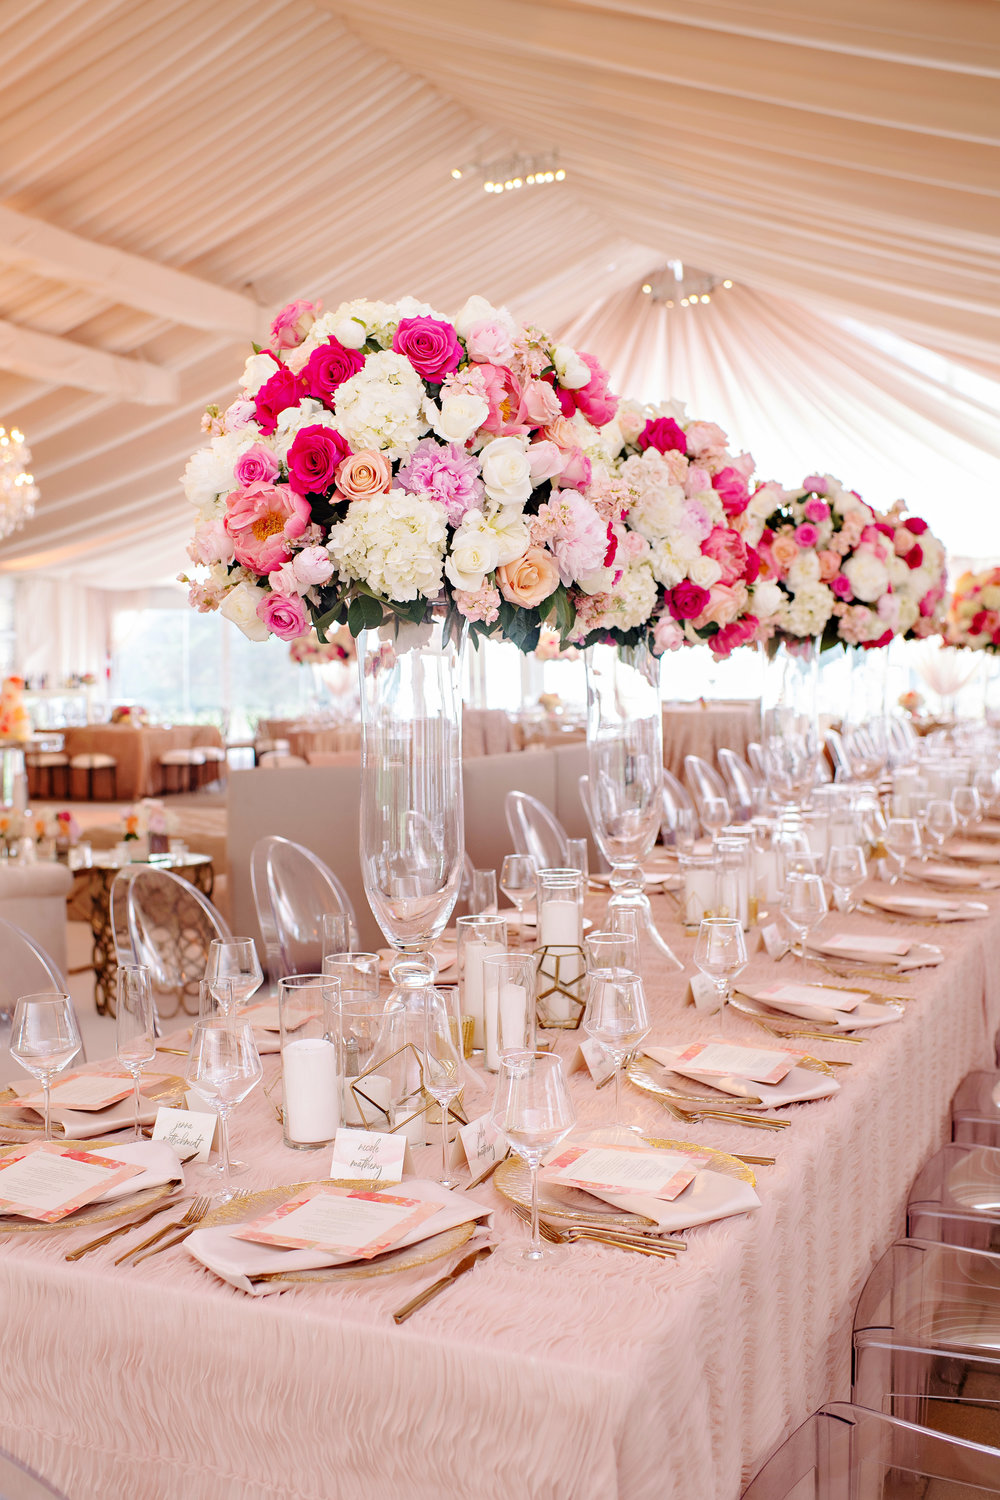 Cincinnati wedding reception at Greenacres Art Center with outdoor tented reception. Florals by Yellow Canary